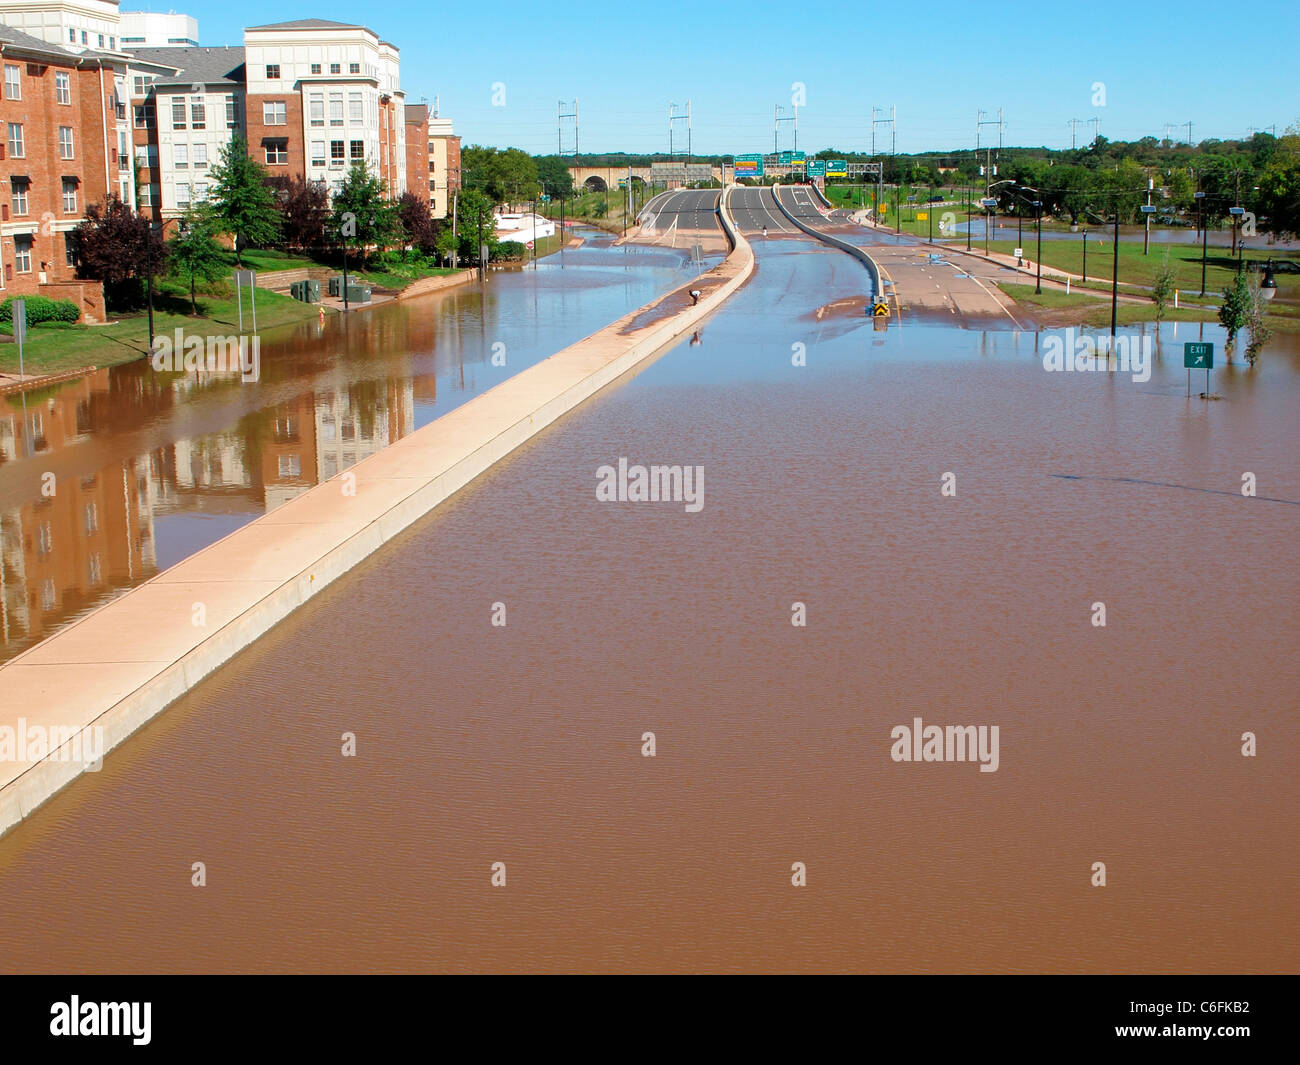 Section of Route 18 in New Brunswick, NJ, flooded with water after Hurricane Irene came through and the Raritan - Stock Image